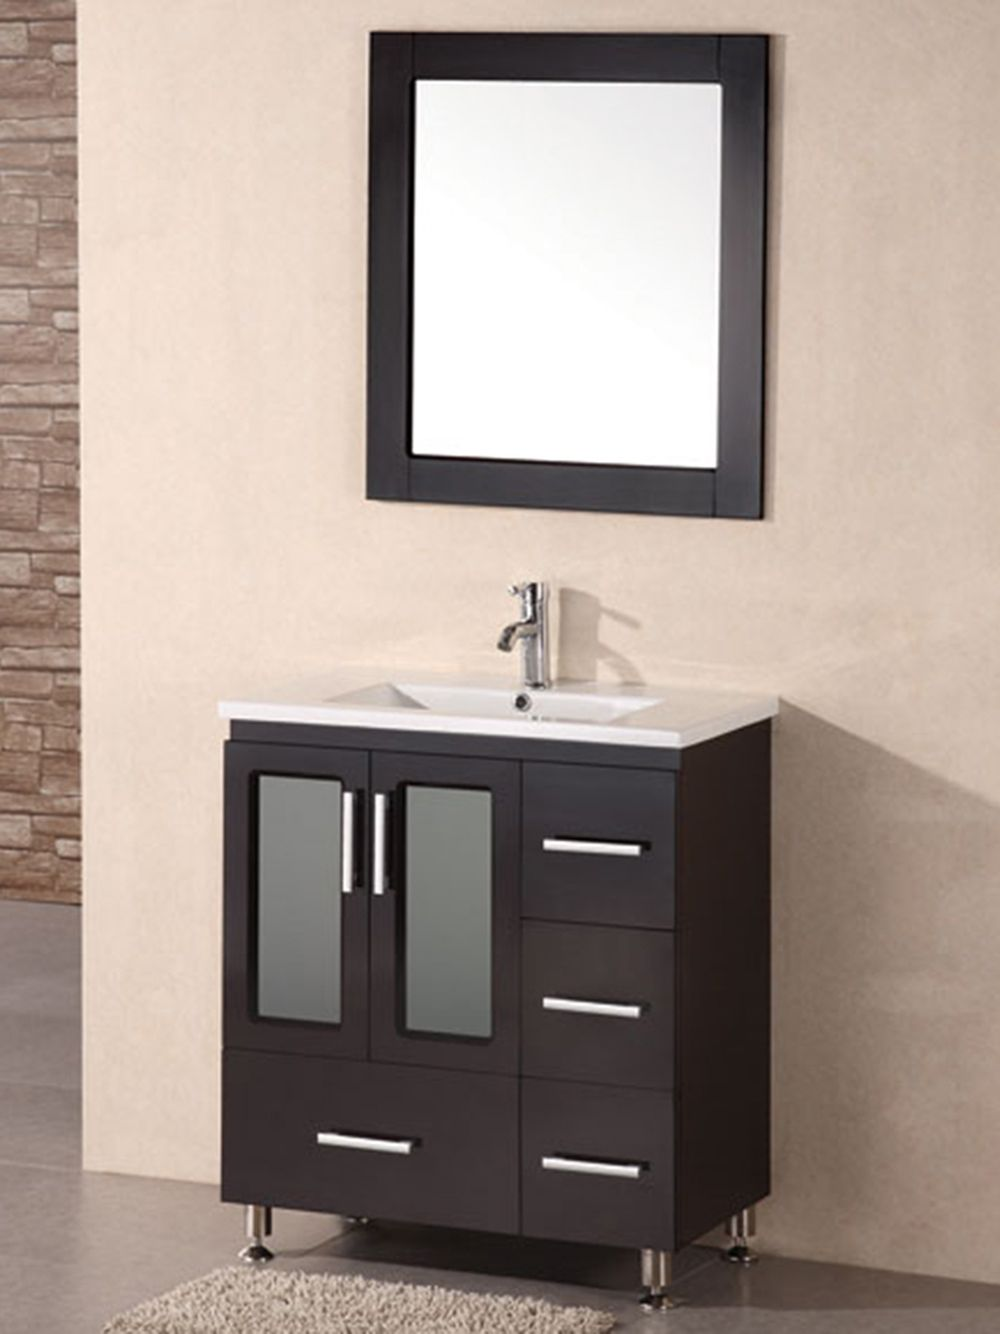 black bathroom style vanity in narrow size with ceramic sink and square mirror with black wooden frame